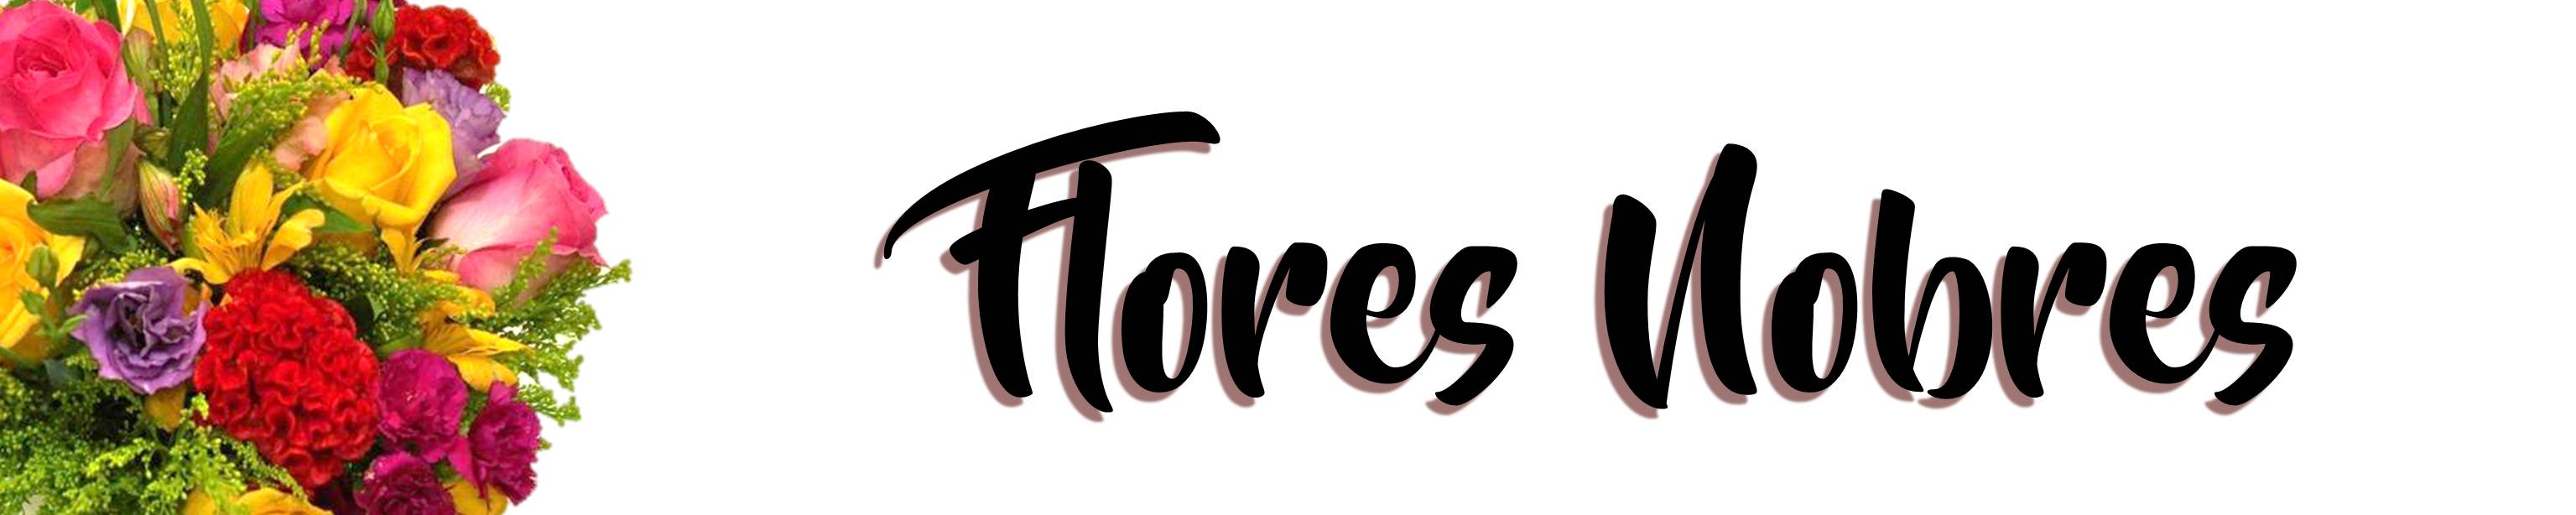 Categoria - Flores Nobres